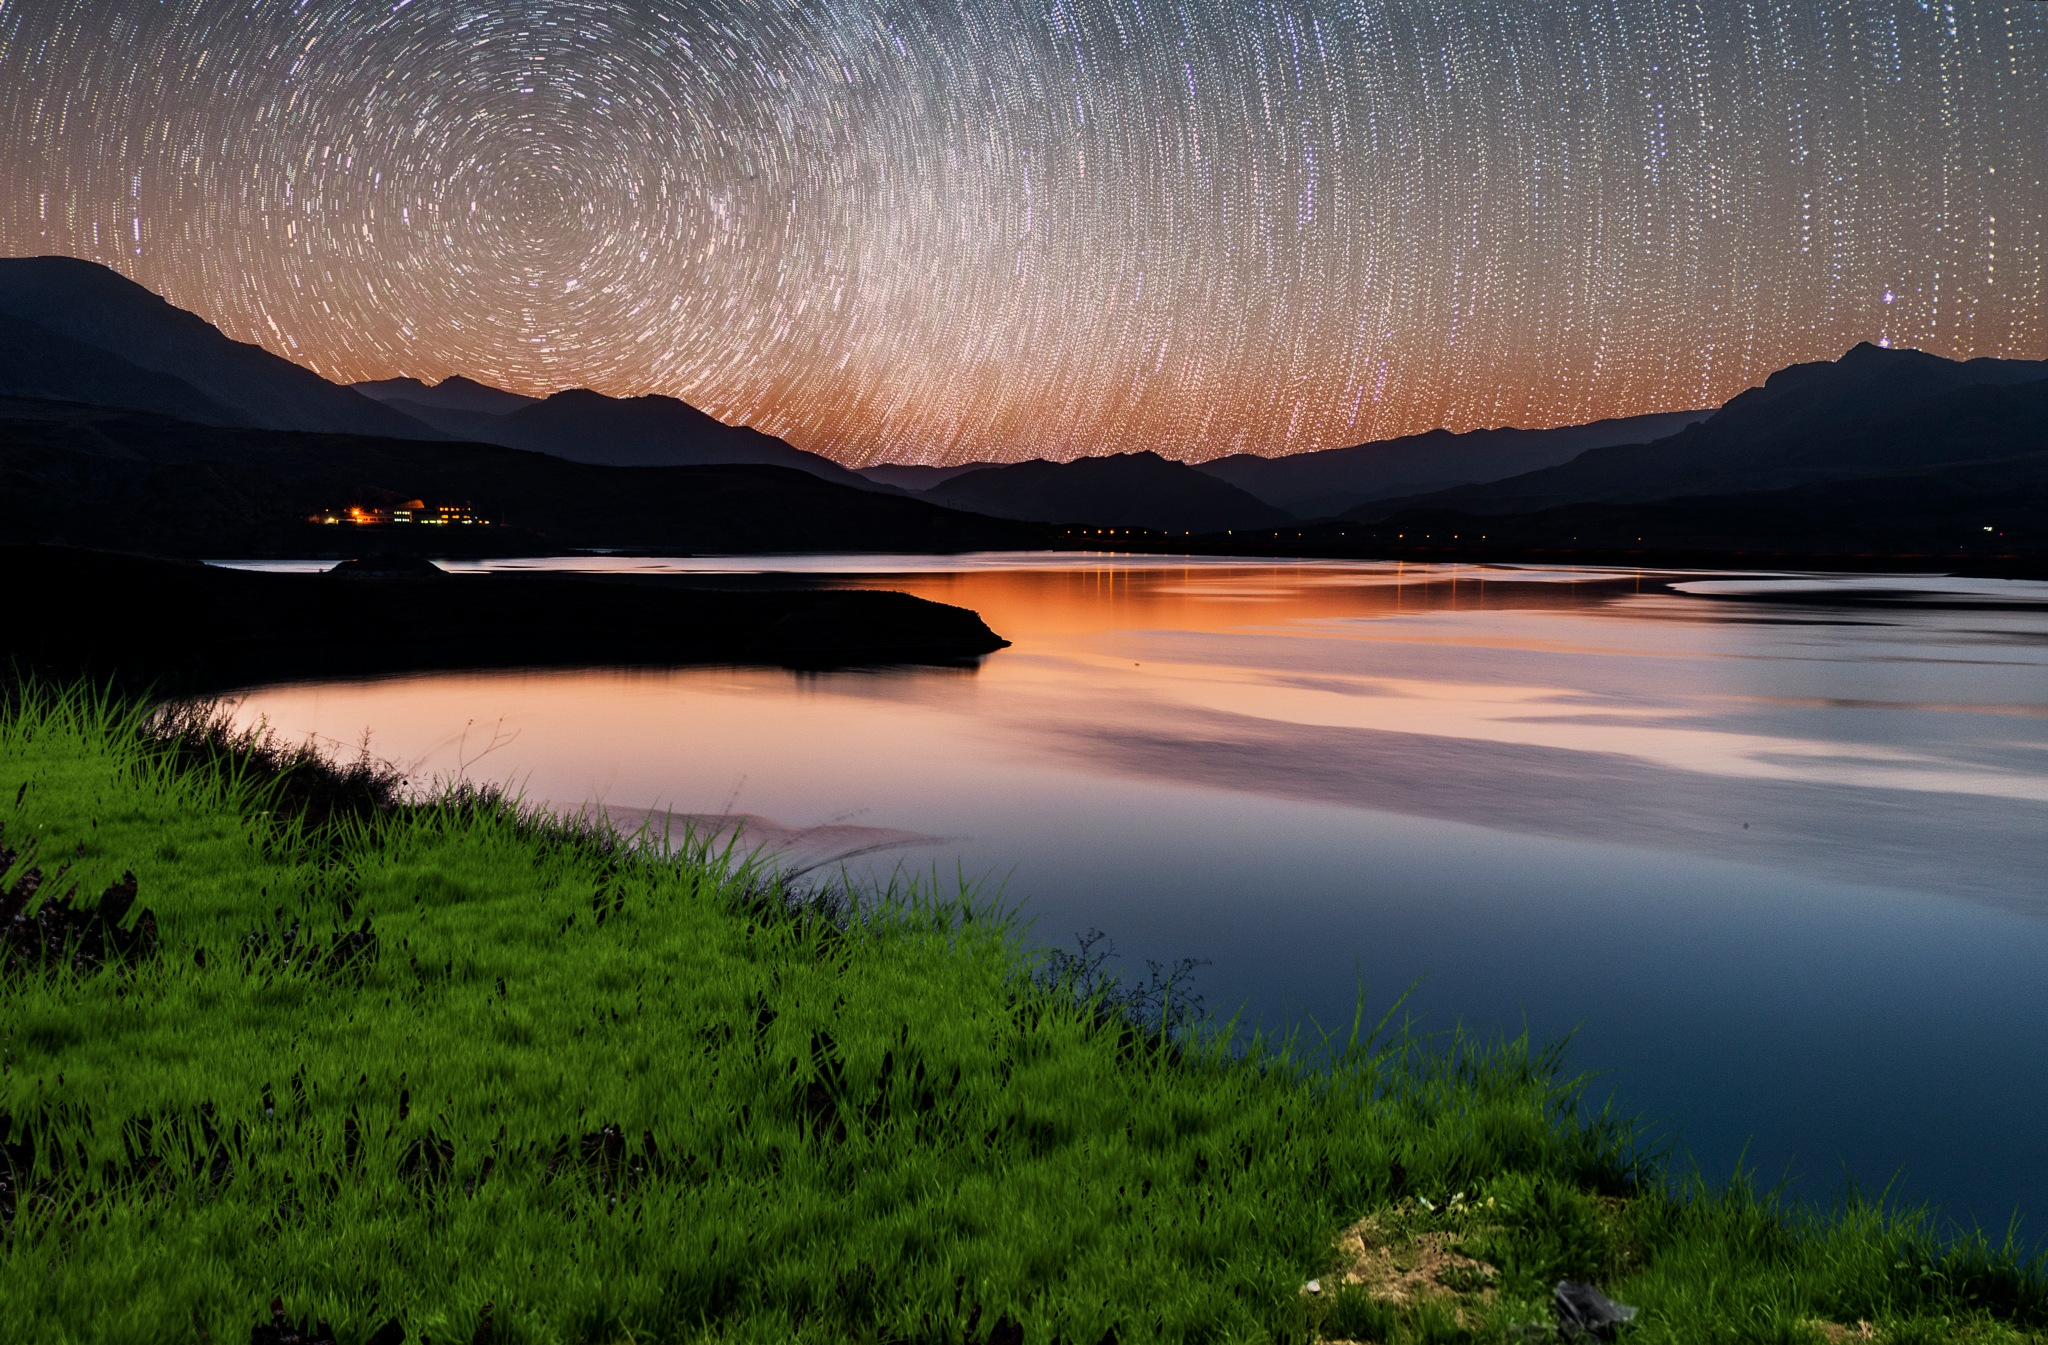 Stars over the lake of Talaghan by Shahriar Dabiri